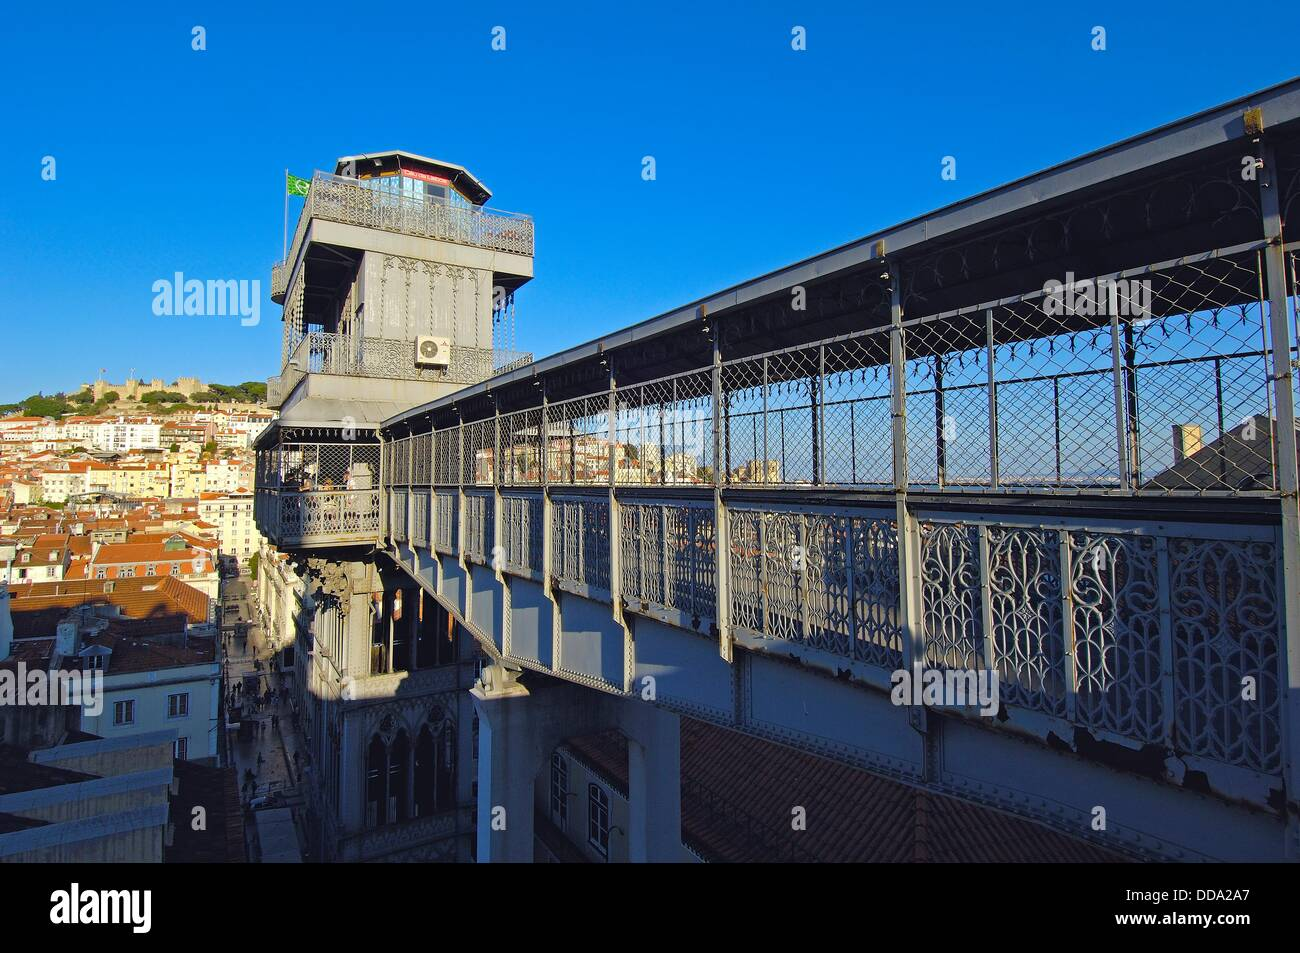 Lisbon, Santa Justa elevator and St  George´s Castle at background, Elevador de Santa Justa, Castelo de Sao Jorge, Stock Photo